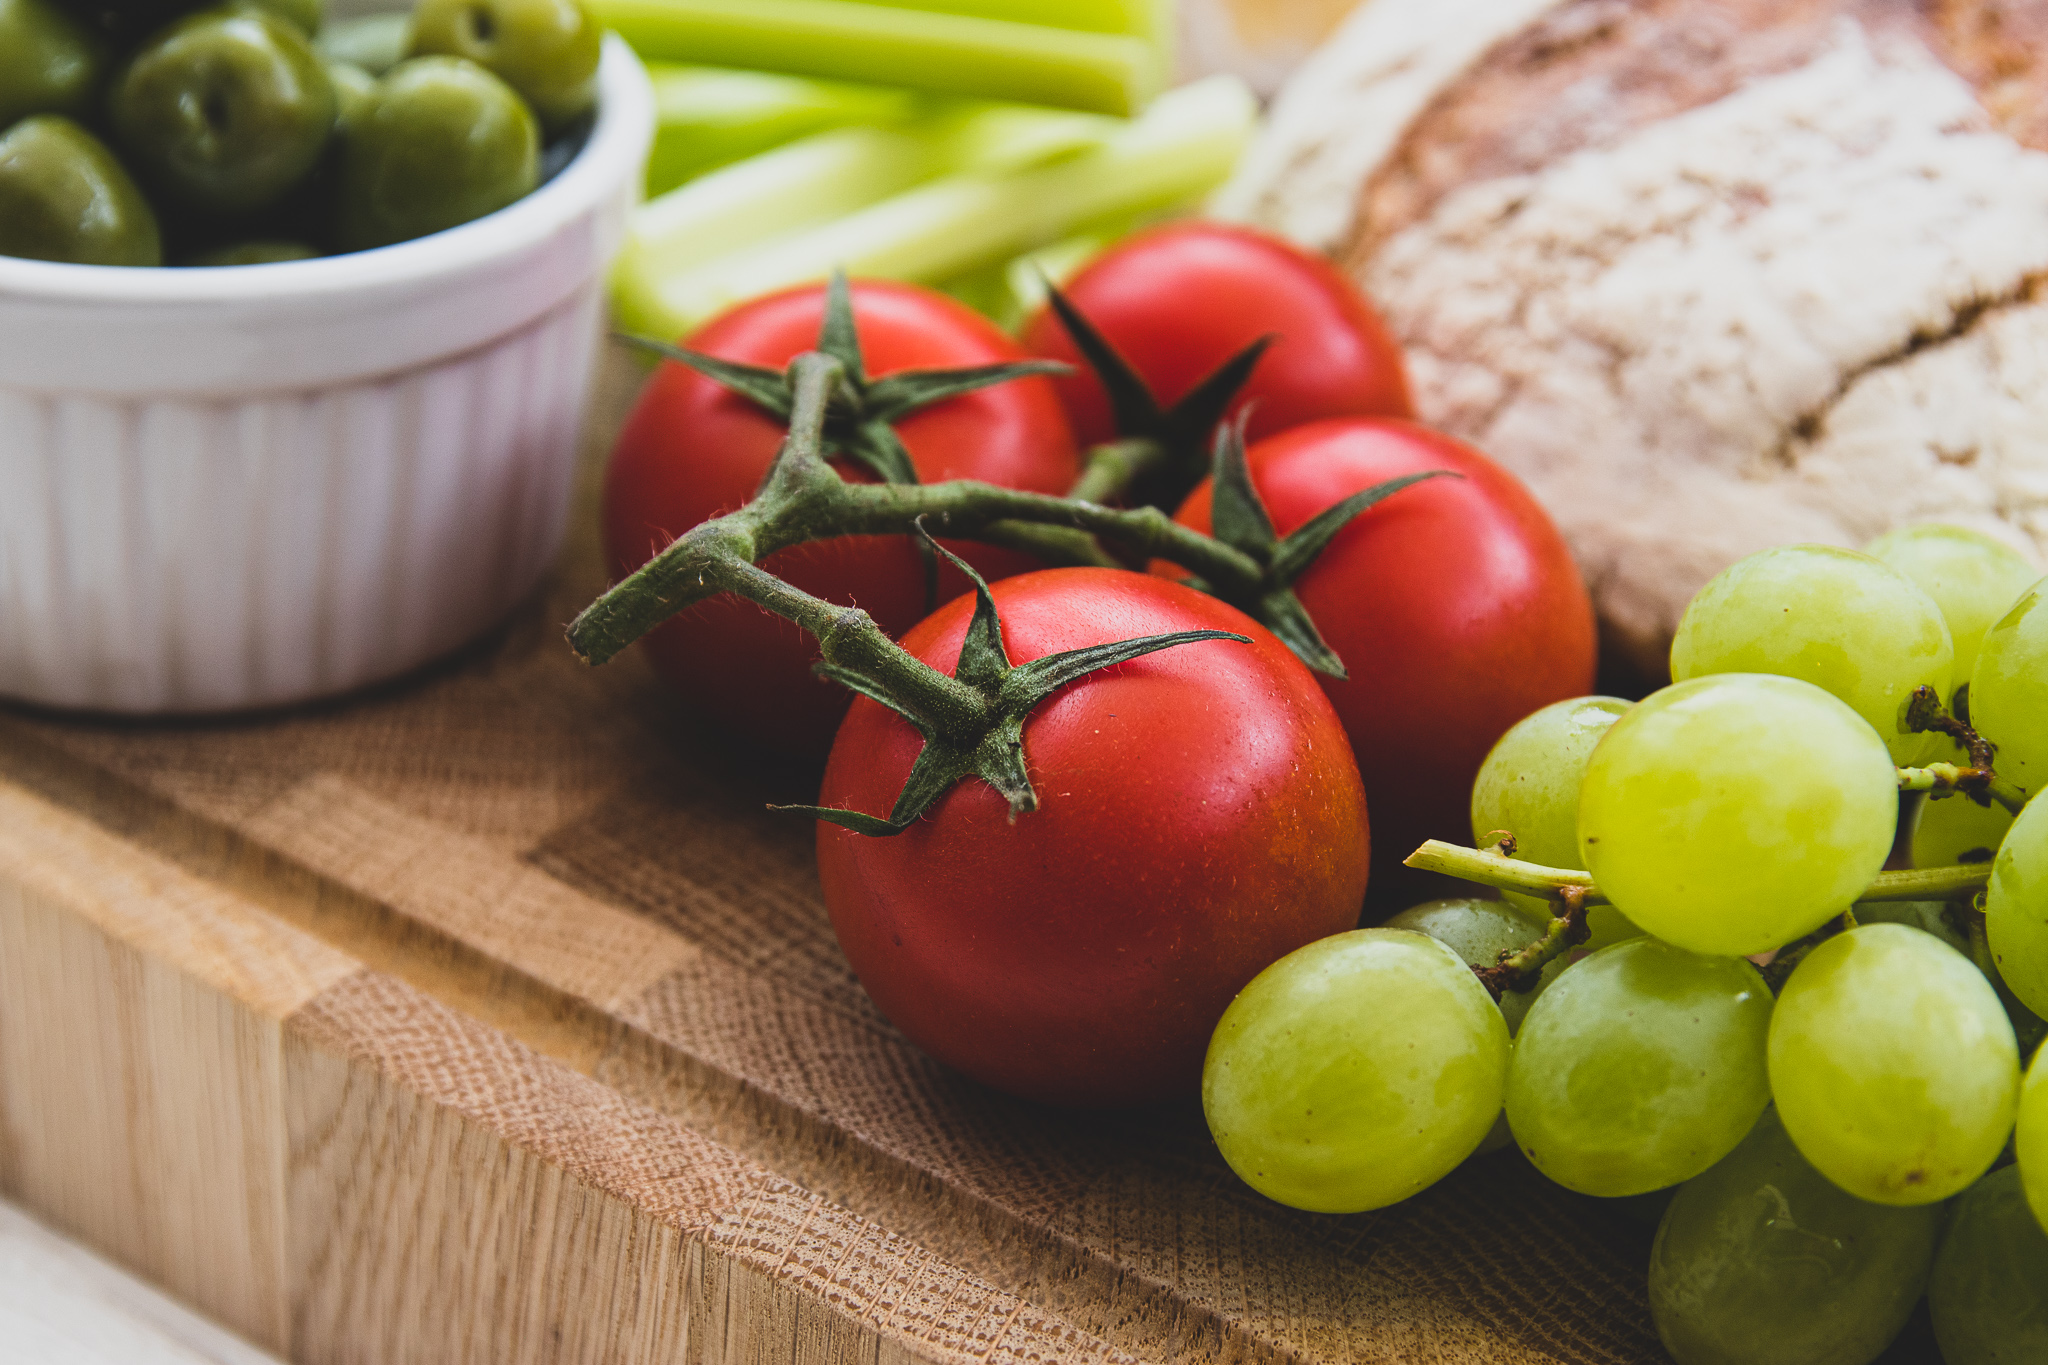 Tomato, grapes and bread